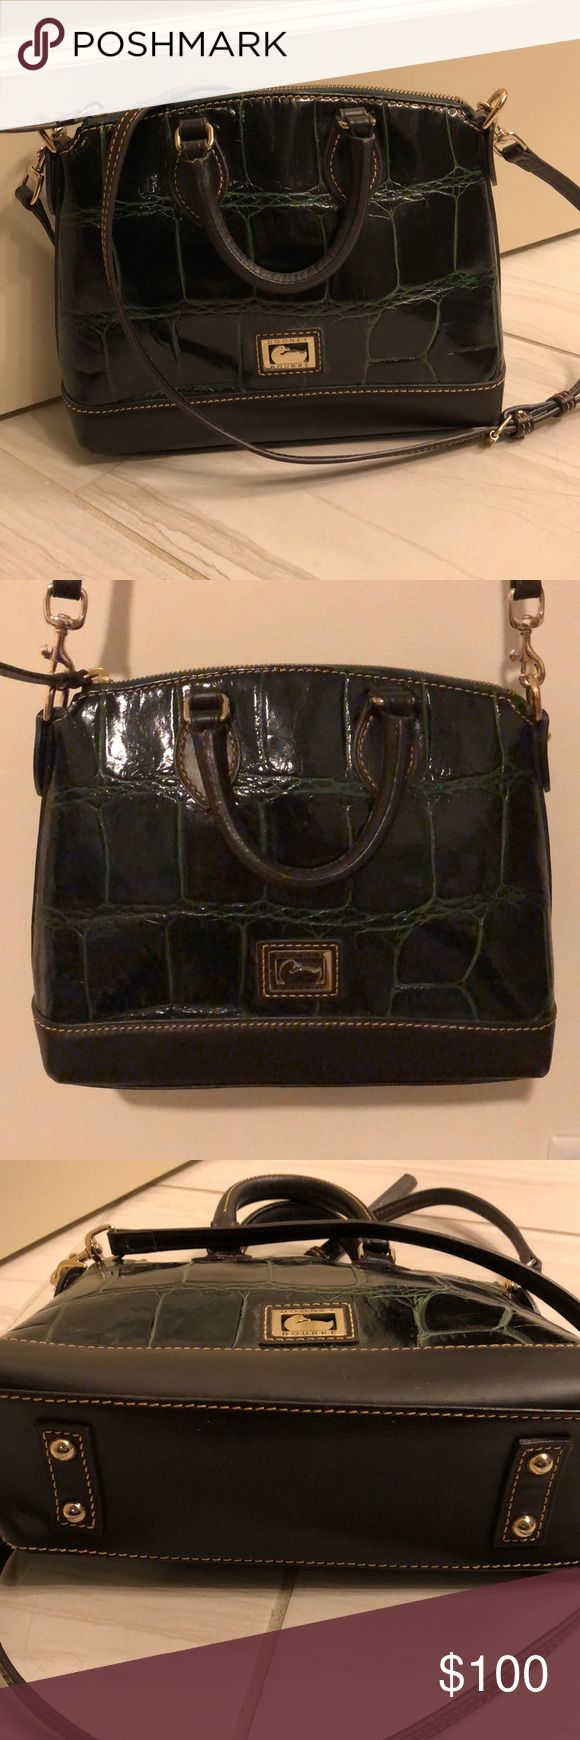 Dooney & Bourke leather crossbody purse Like new (work once) Dooney & Bourke dark olive green alligator pattern leather crossbody satchel purse. Excellent condition! Crossbody strap is adjustable and removable. Inside perfectly clean with key strap, zip pocket, snap pocket (manufacturer sticker still on in one pocket - it's that like new!) Dooney & Bourke Bags Crossbody Bags